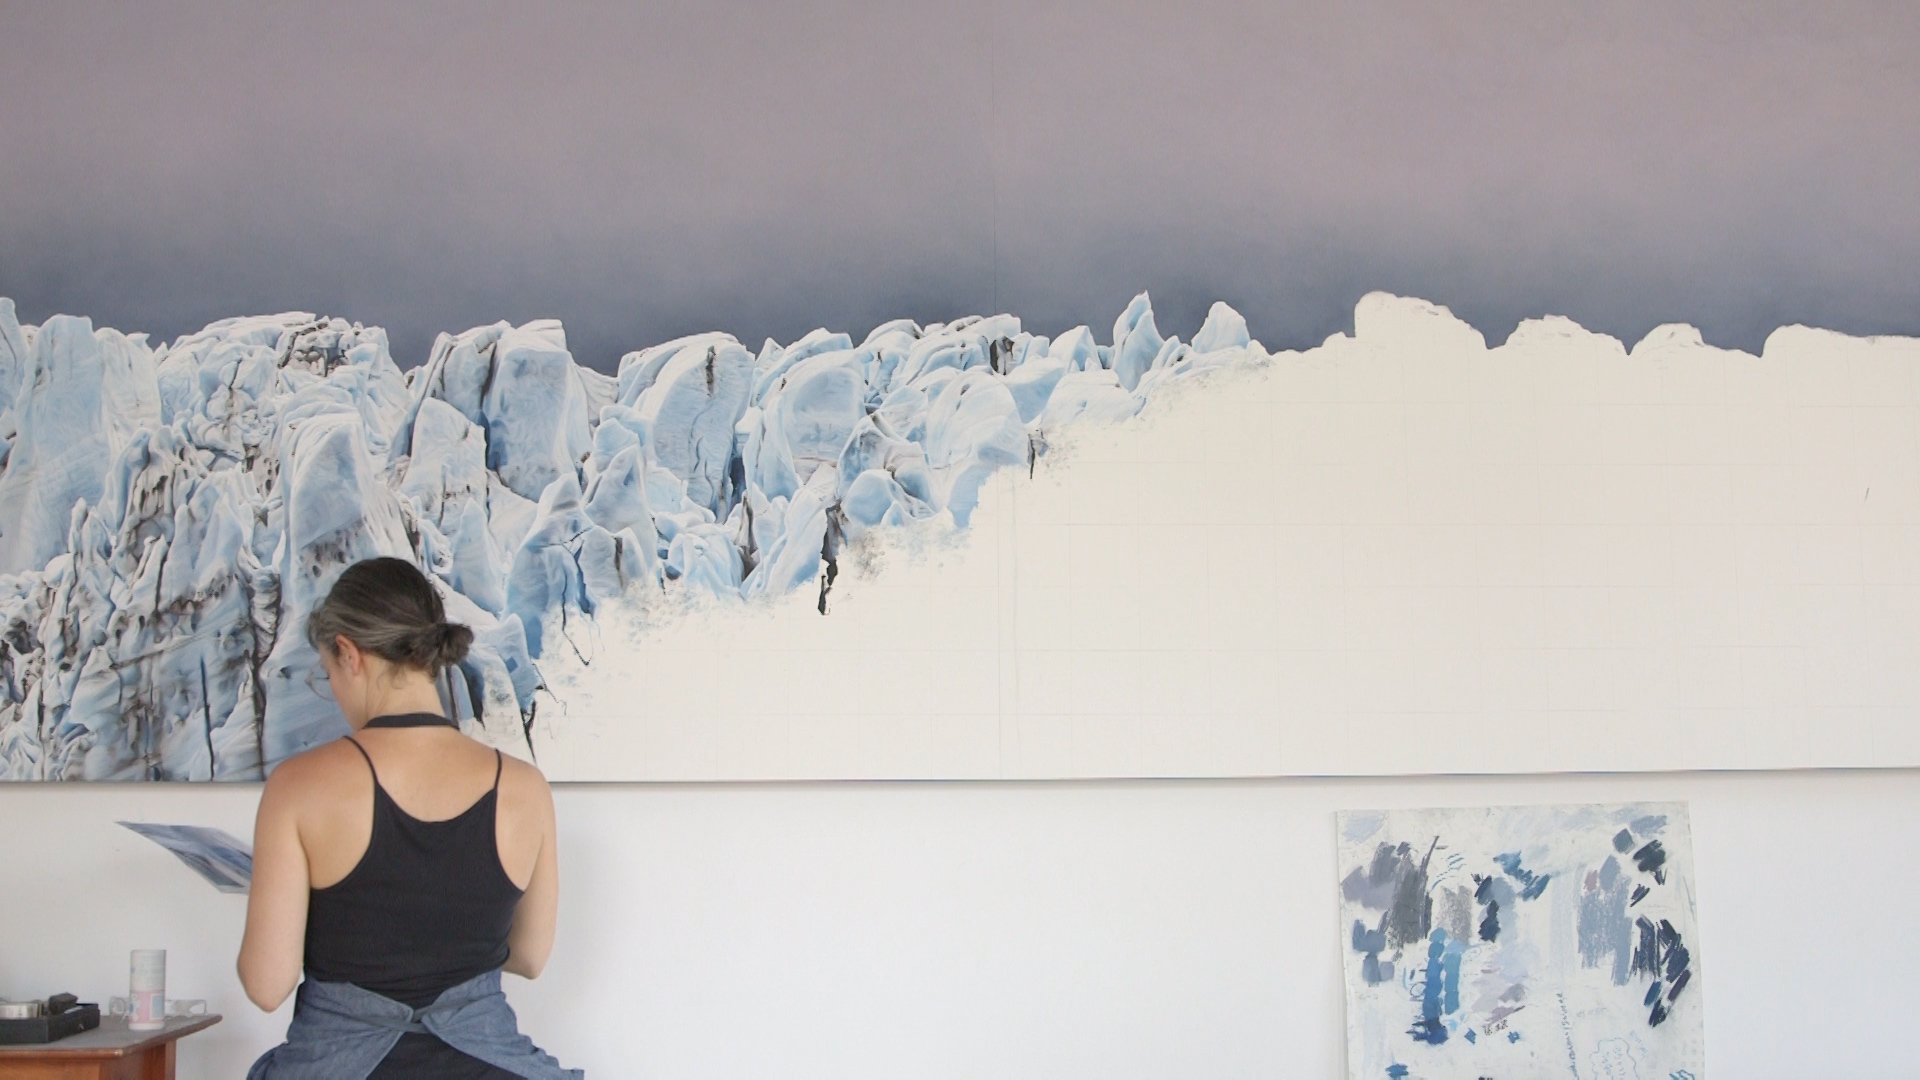 Changing Minds about Climate Change - Two artists are helping to reinvigorate the conversation about climate change by presenting its truths more...artfully.Season 1, Episode 3